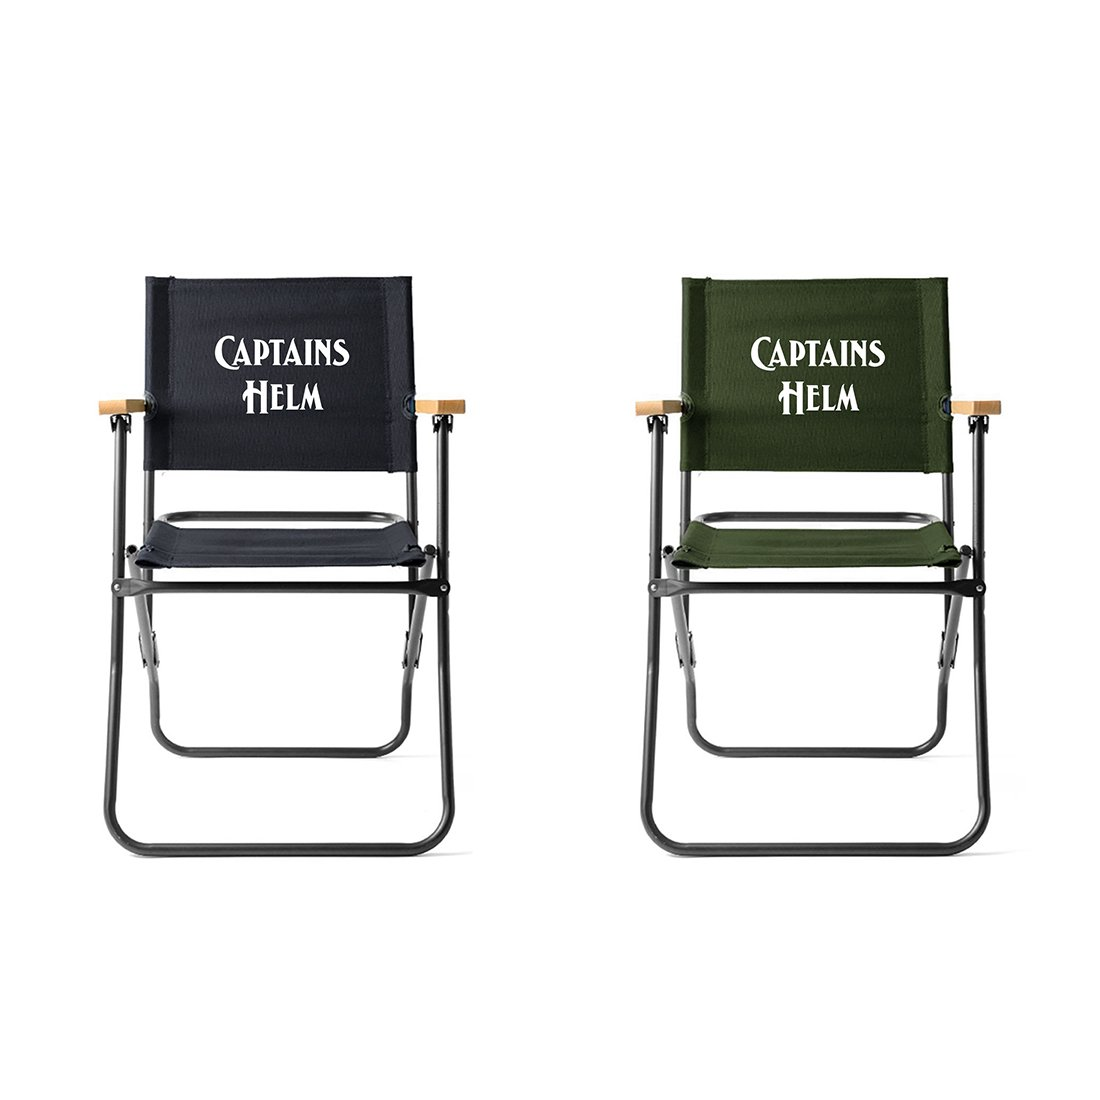 CAPTAINS HELM #CH MILITARY FOLDING CHAIR